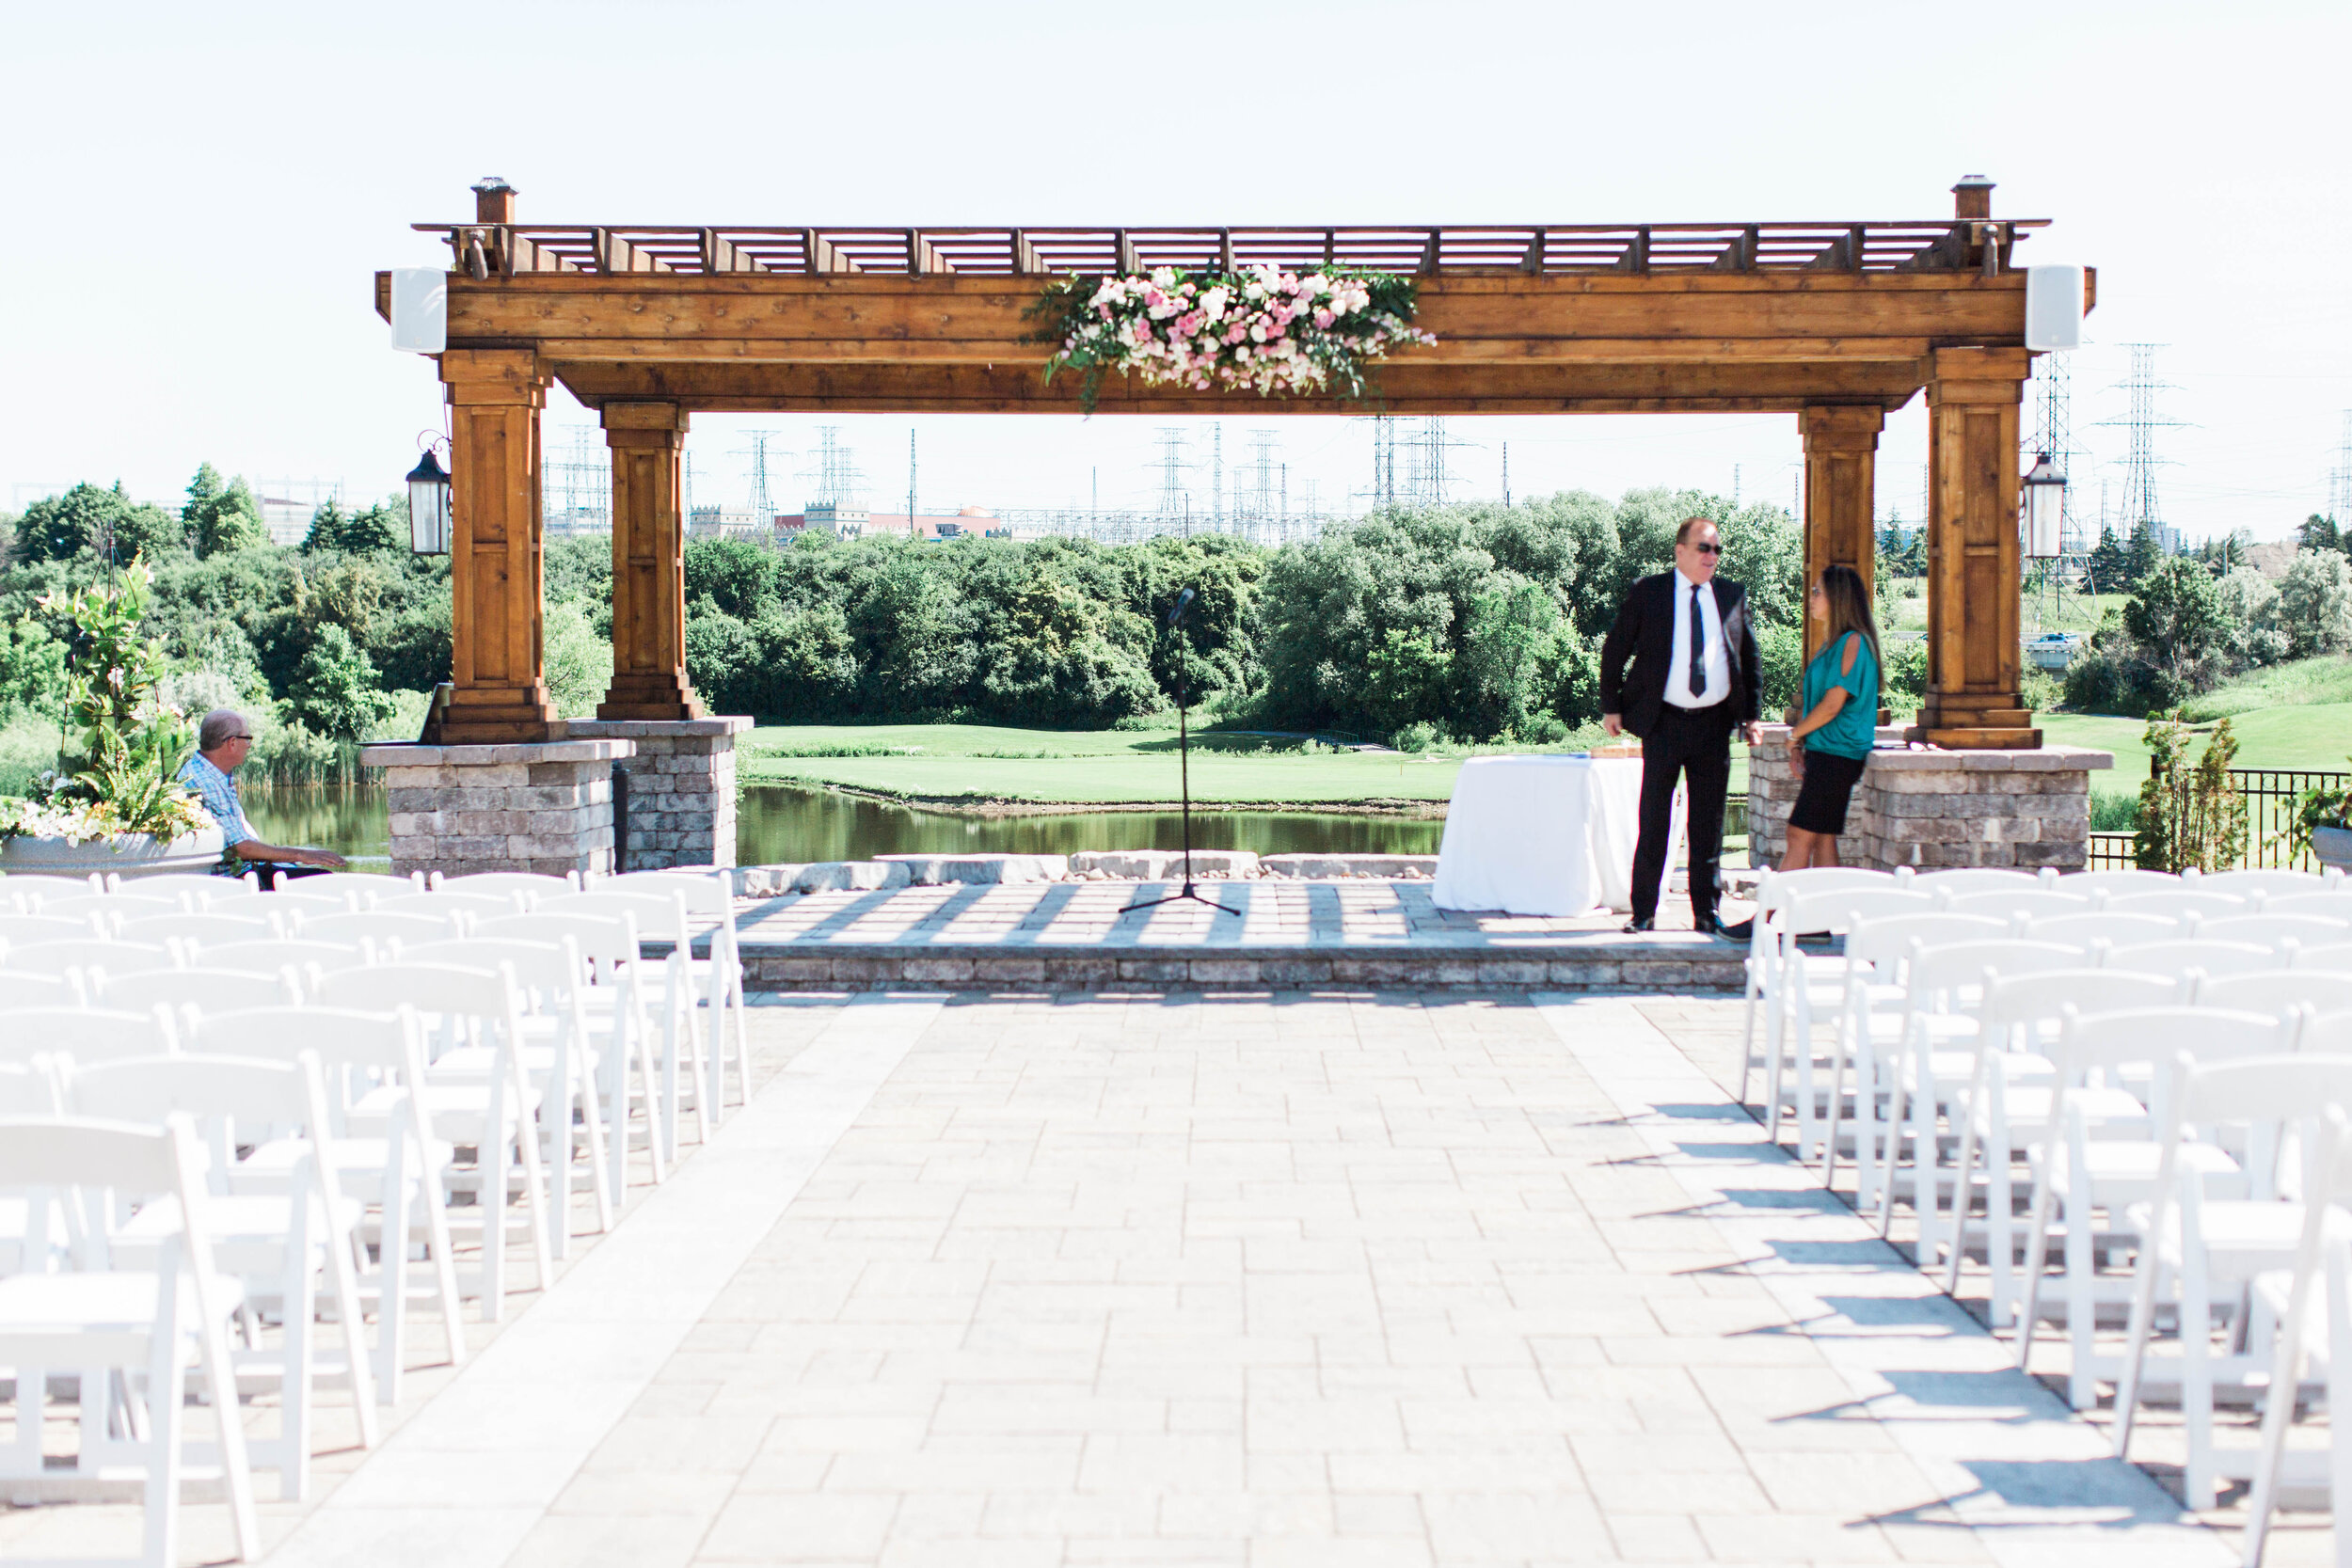 Large Wood Ceremony Arbour with decor setup - Trendy Modern Brunch Wedding - Historia Wedding and Event Planning